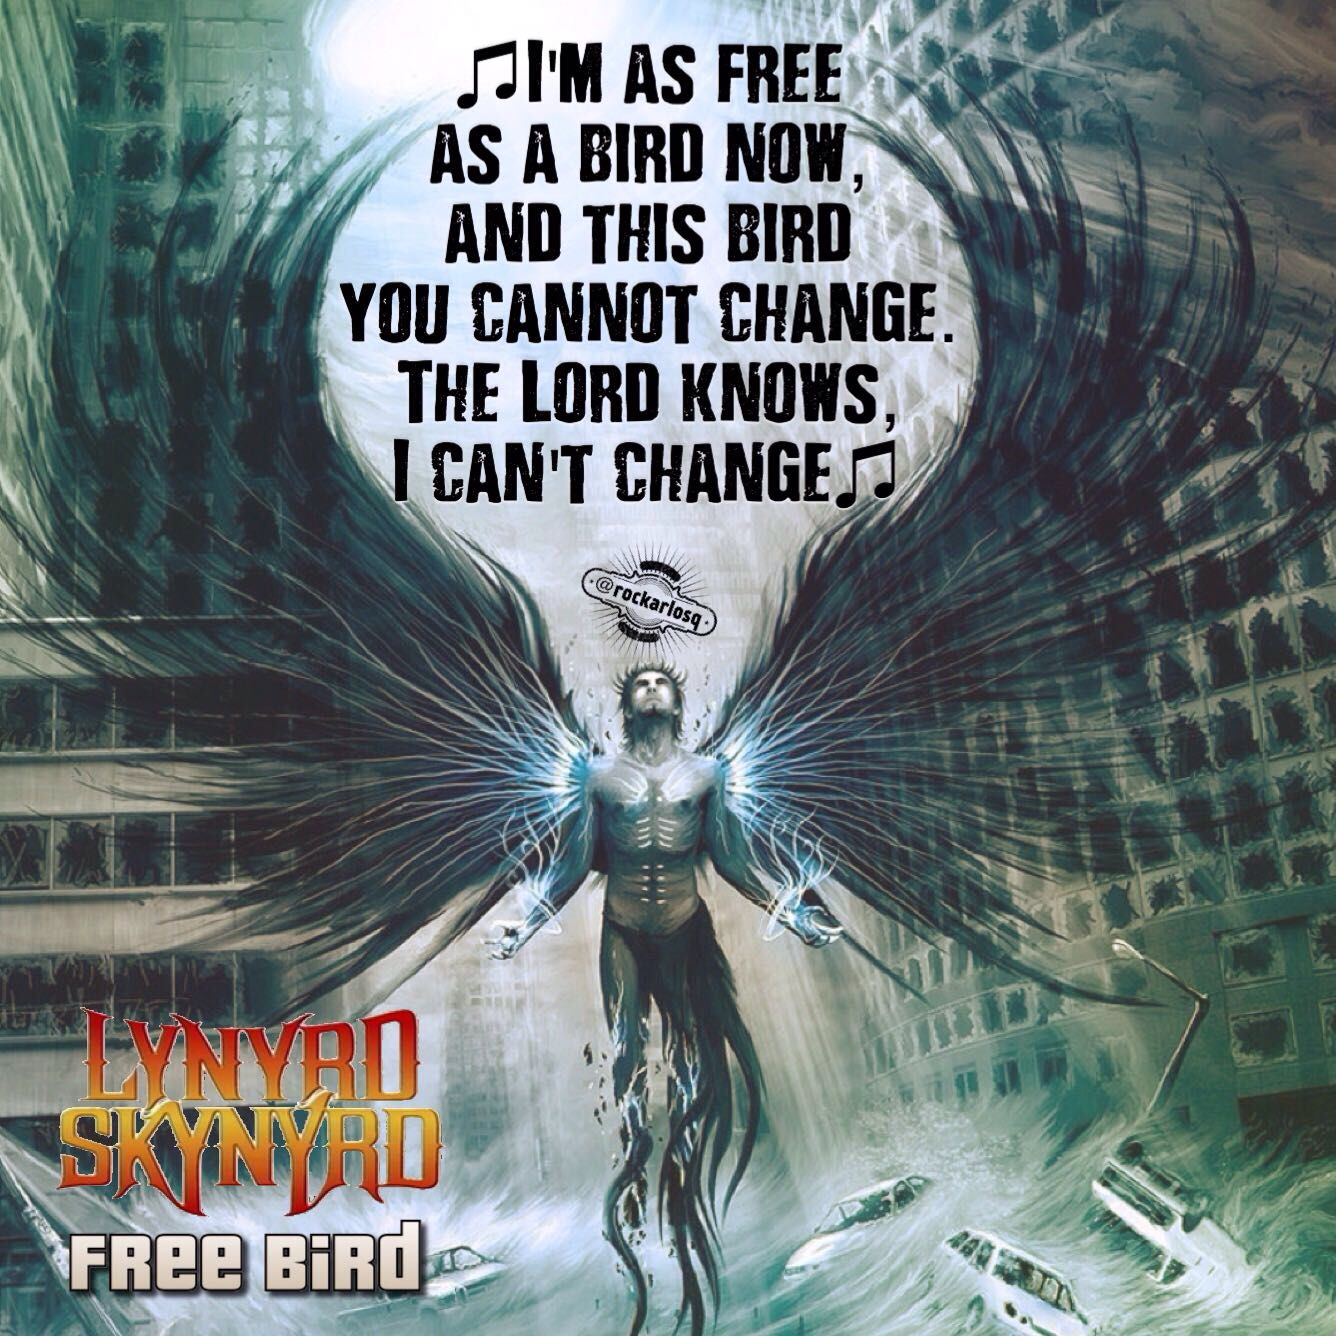 ♫I'm as free as a bird now, and this bird you cannot change.  The Lord knows, I can't change♫ #LynyrdSkynyrd #FreeBird